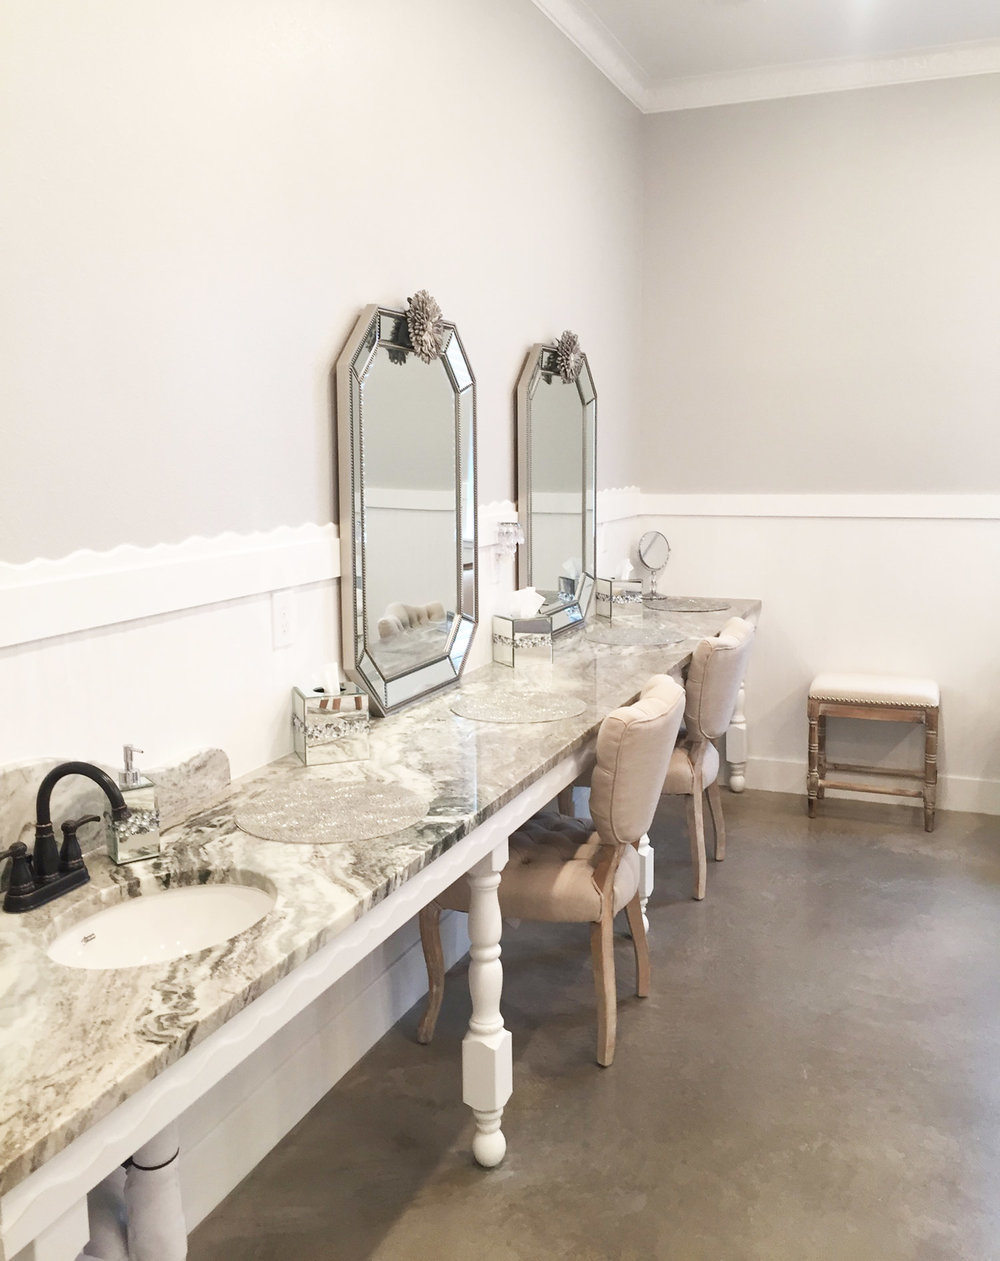 Firefly Gardens bridal suite with a marble counter